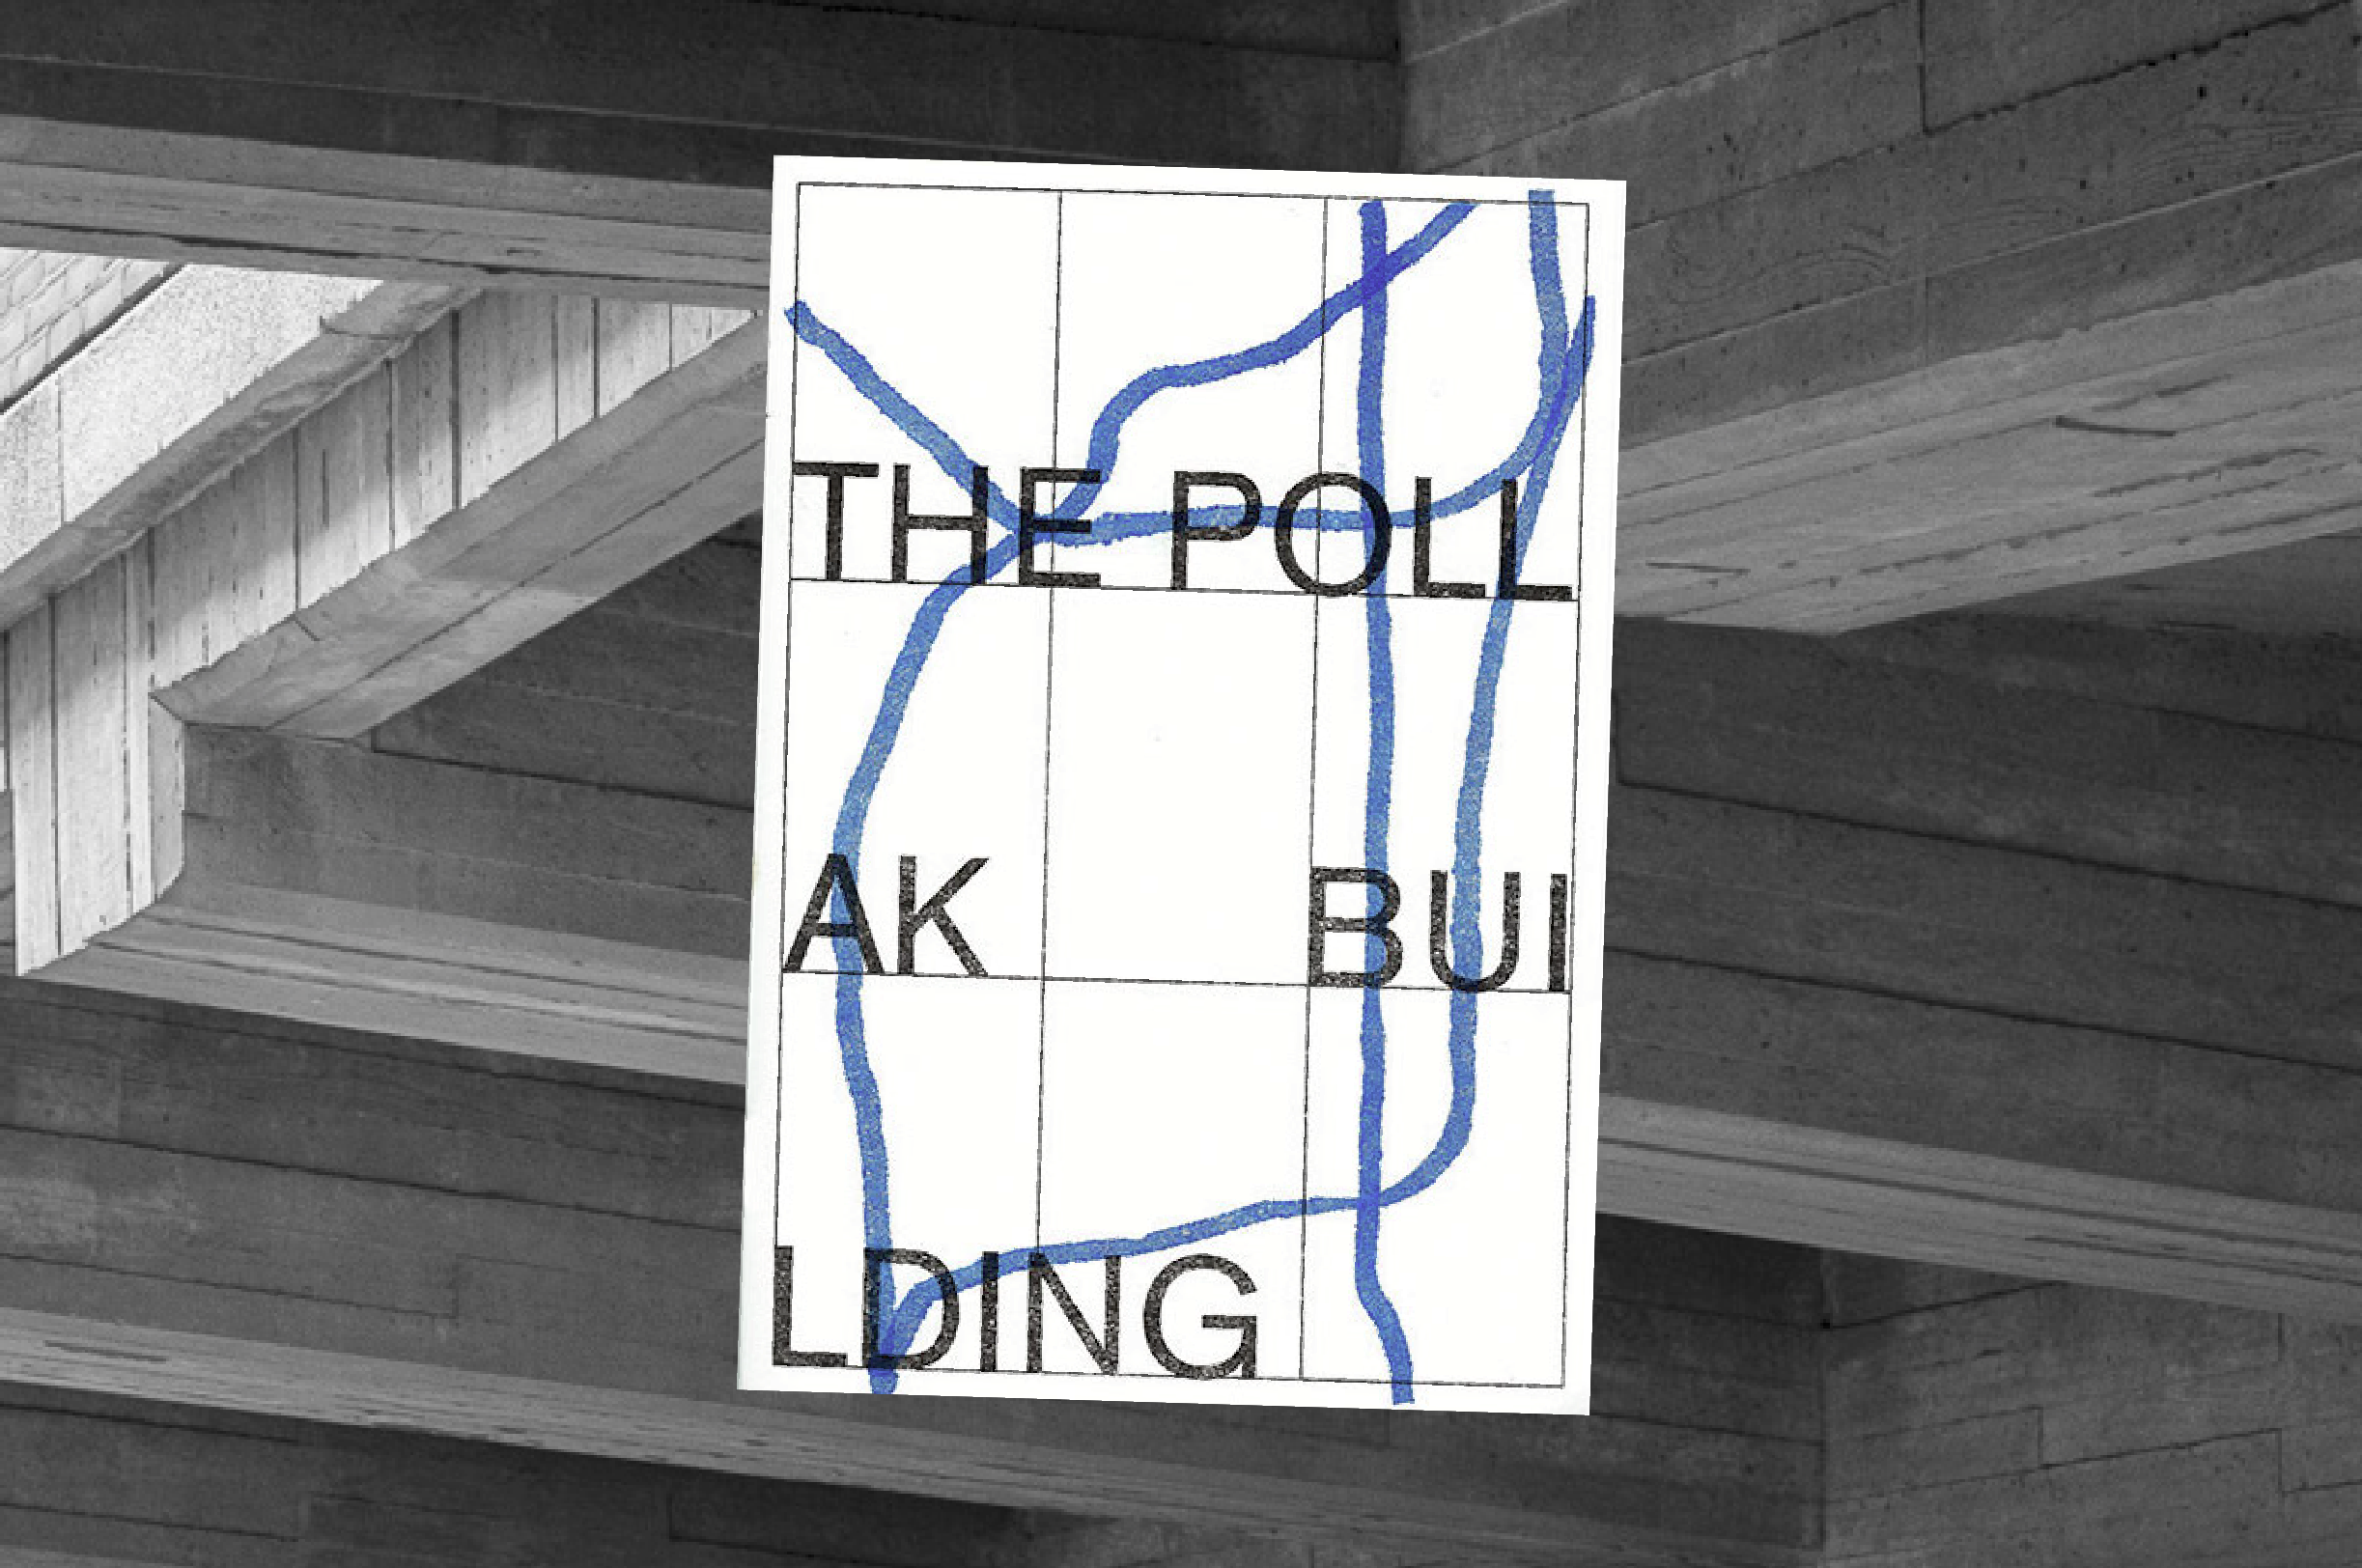 THE POLLAK BUILDING PUBLICATION